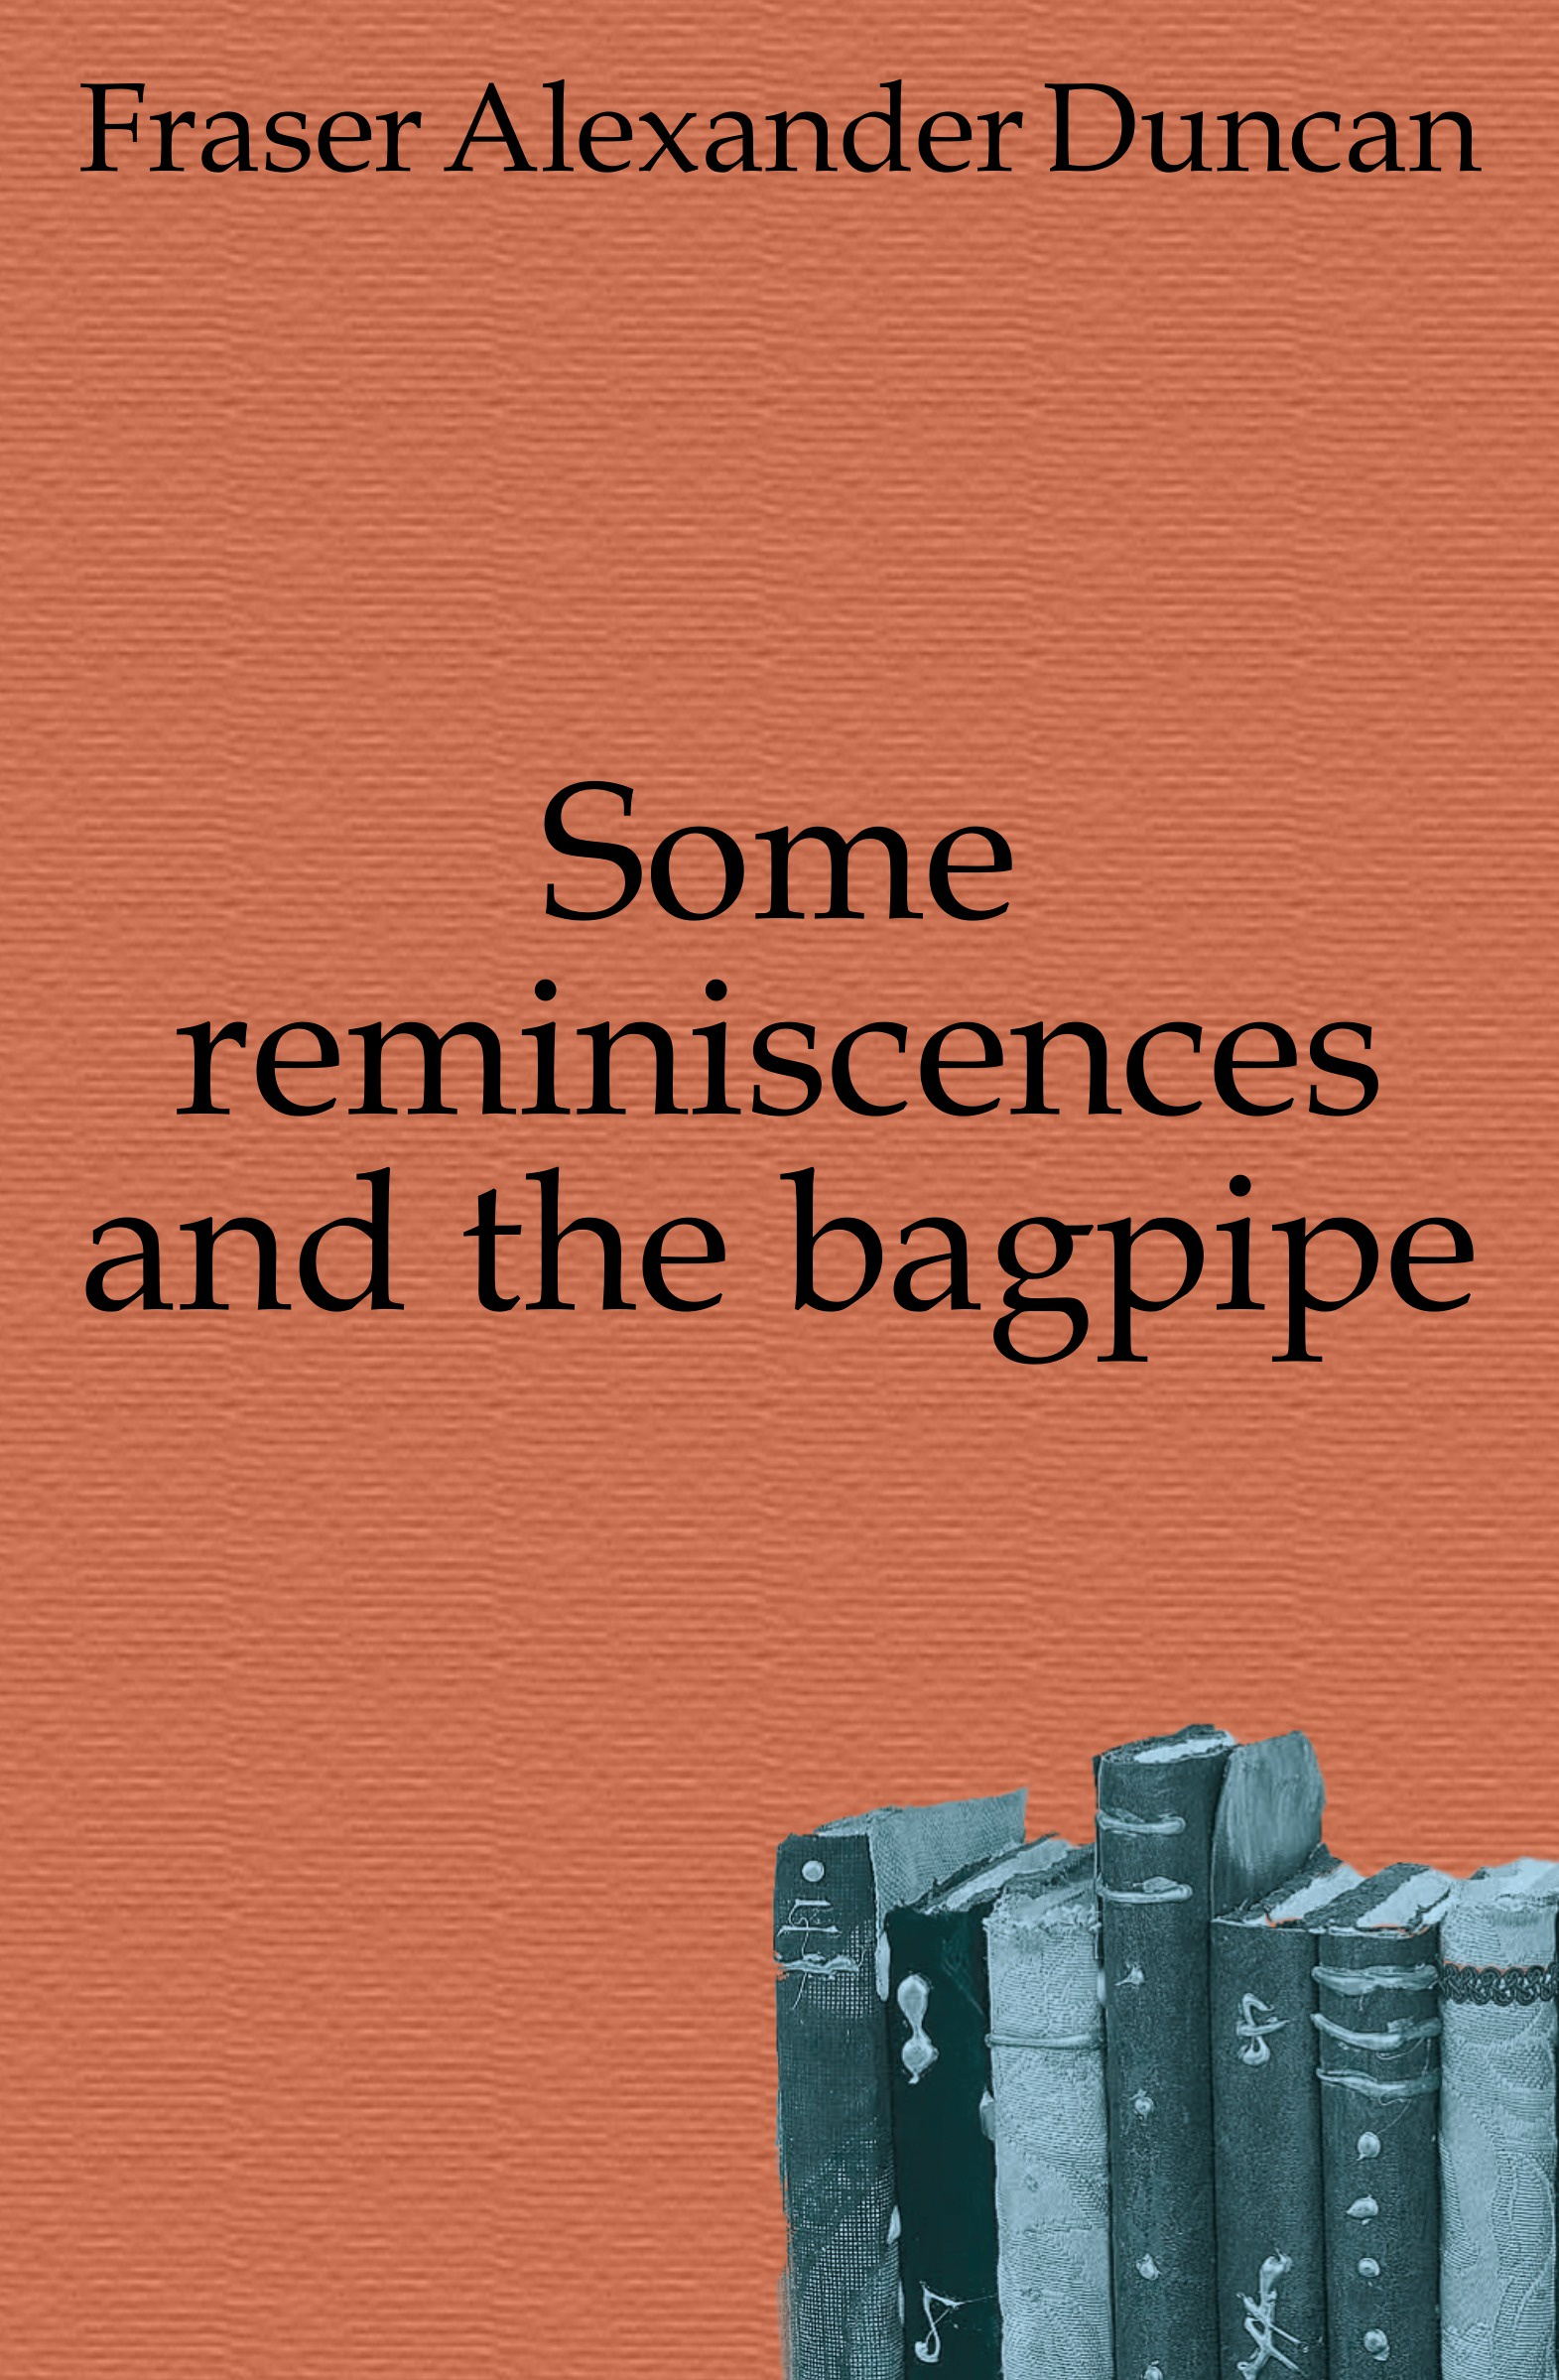 Fraser Alexander Duncan Some reminiscences and the bagpipe